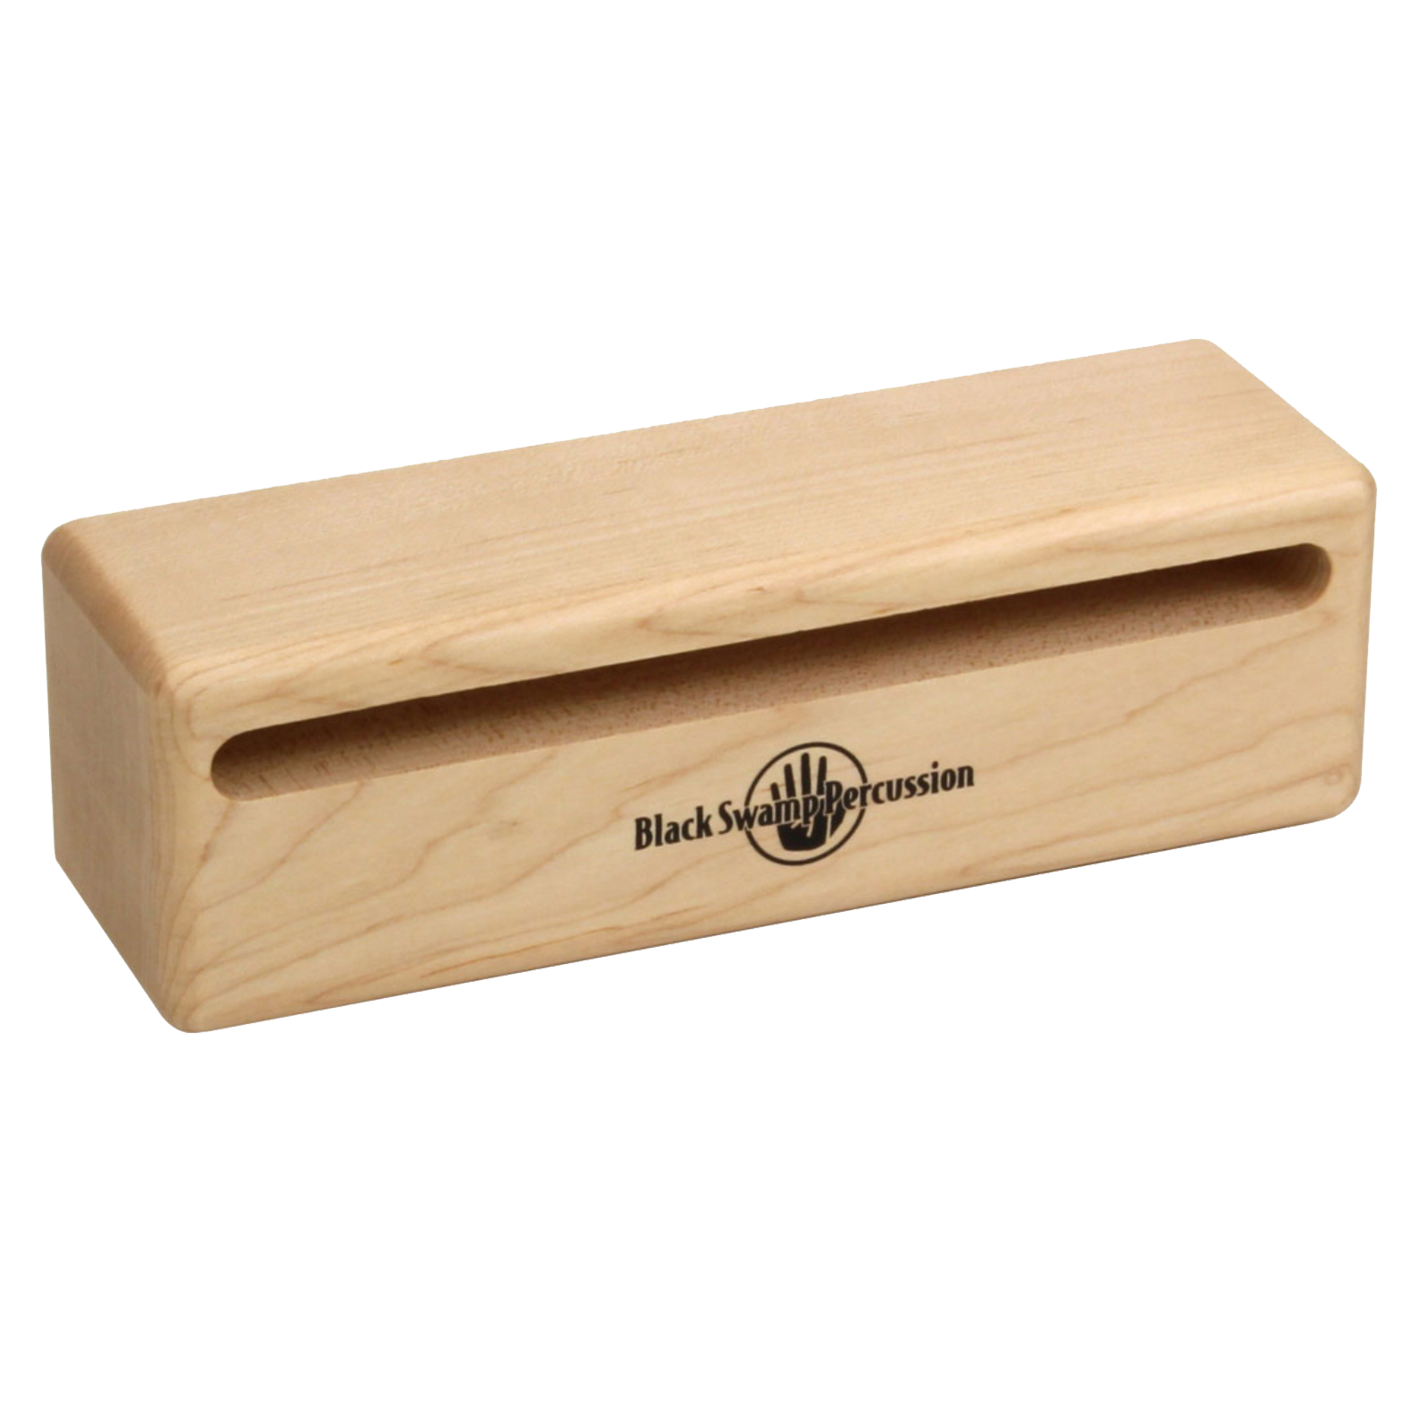 Black Swamp - Rock Maple Wood Blocks-Percussion Accessories-Black Swamp-Large-Music Elements